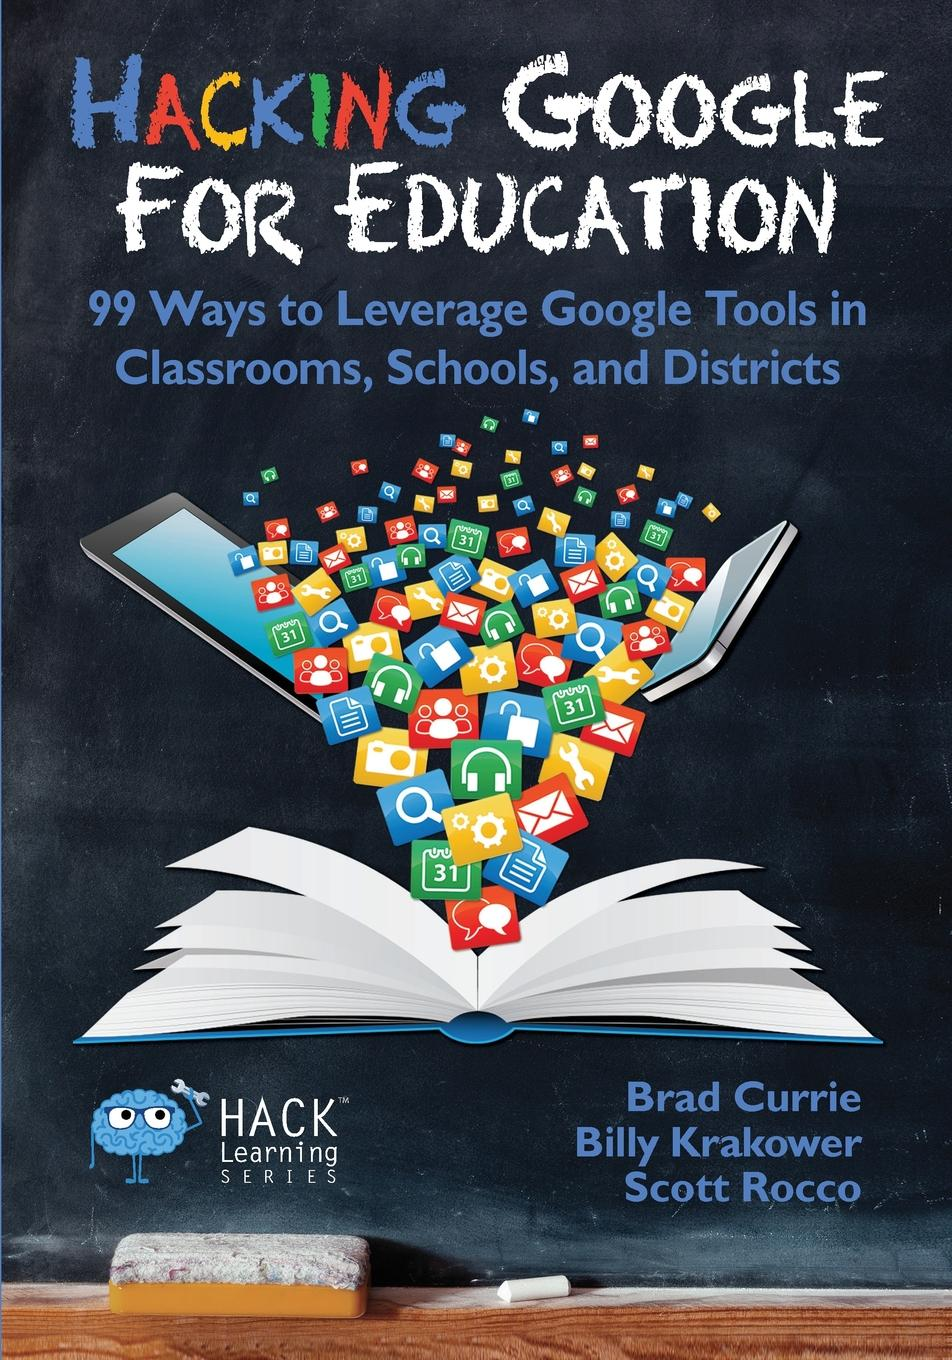 Brad Currie, Billy Krakower, Scott Rocco Hacking Google for Education. 99 Ways to Leverage Google Tools in Classrooms, Schools, and Districts